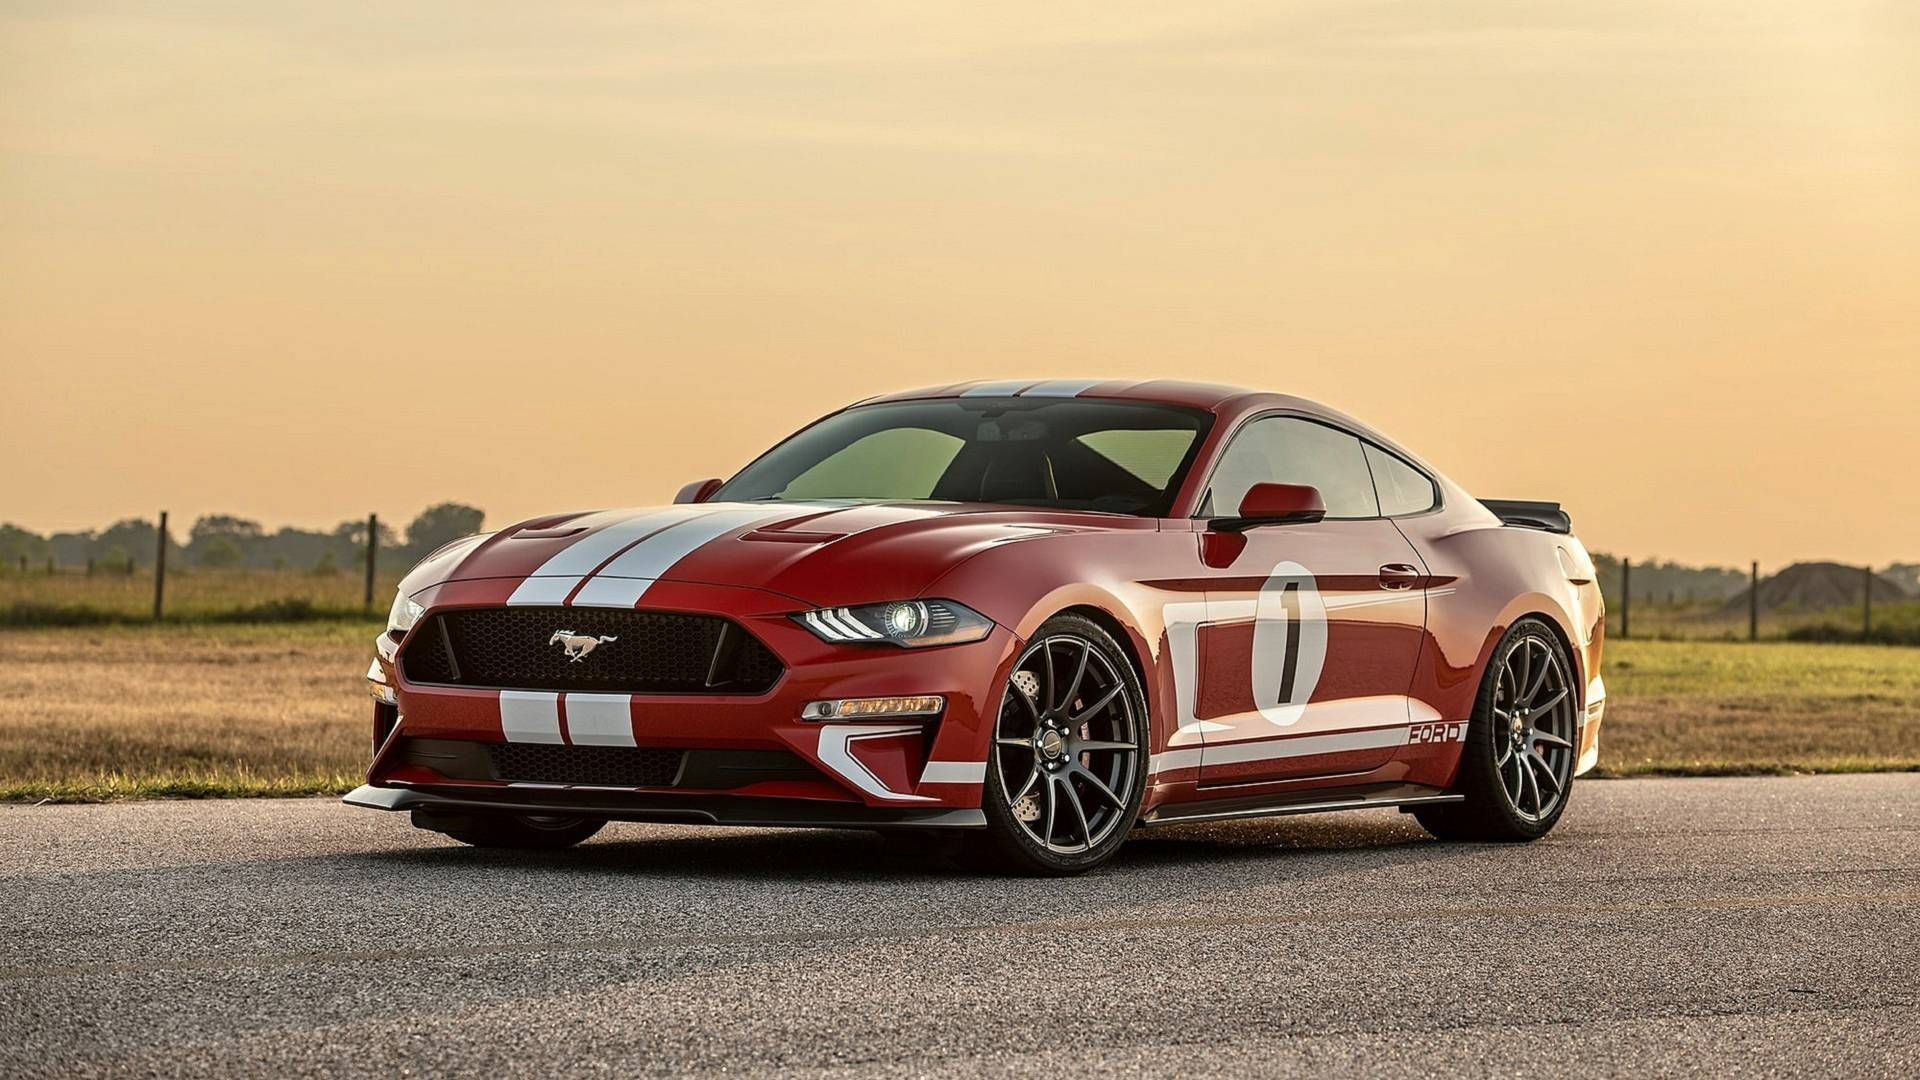 U.S. atelier Hennessey has announced a limited series of Ford Mustang muscle cars, named the Heritage Edition, to celebrate 10,000 customized vehicles